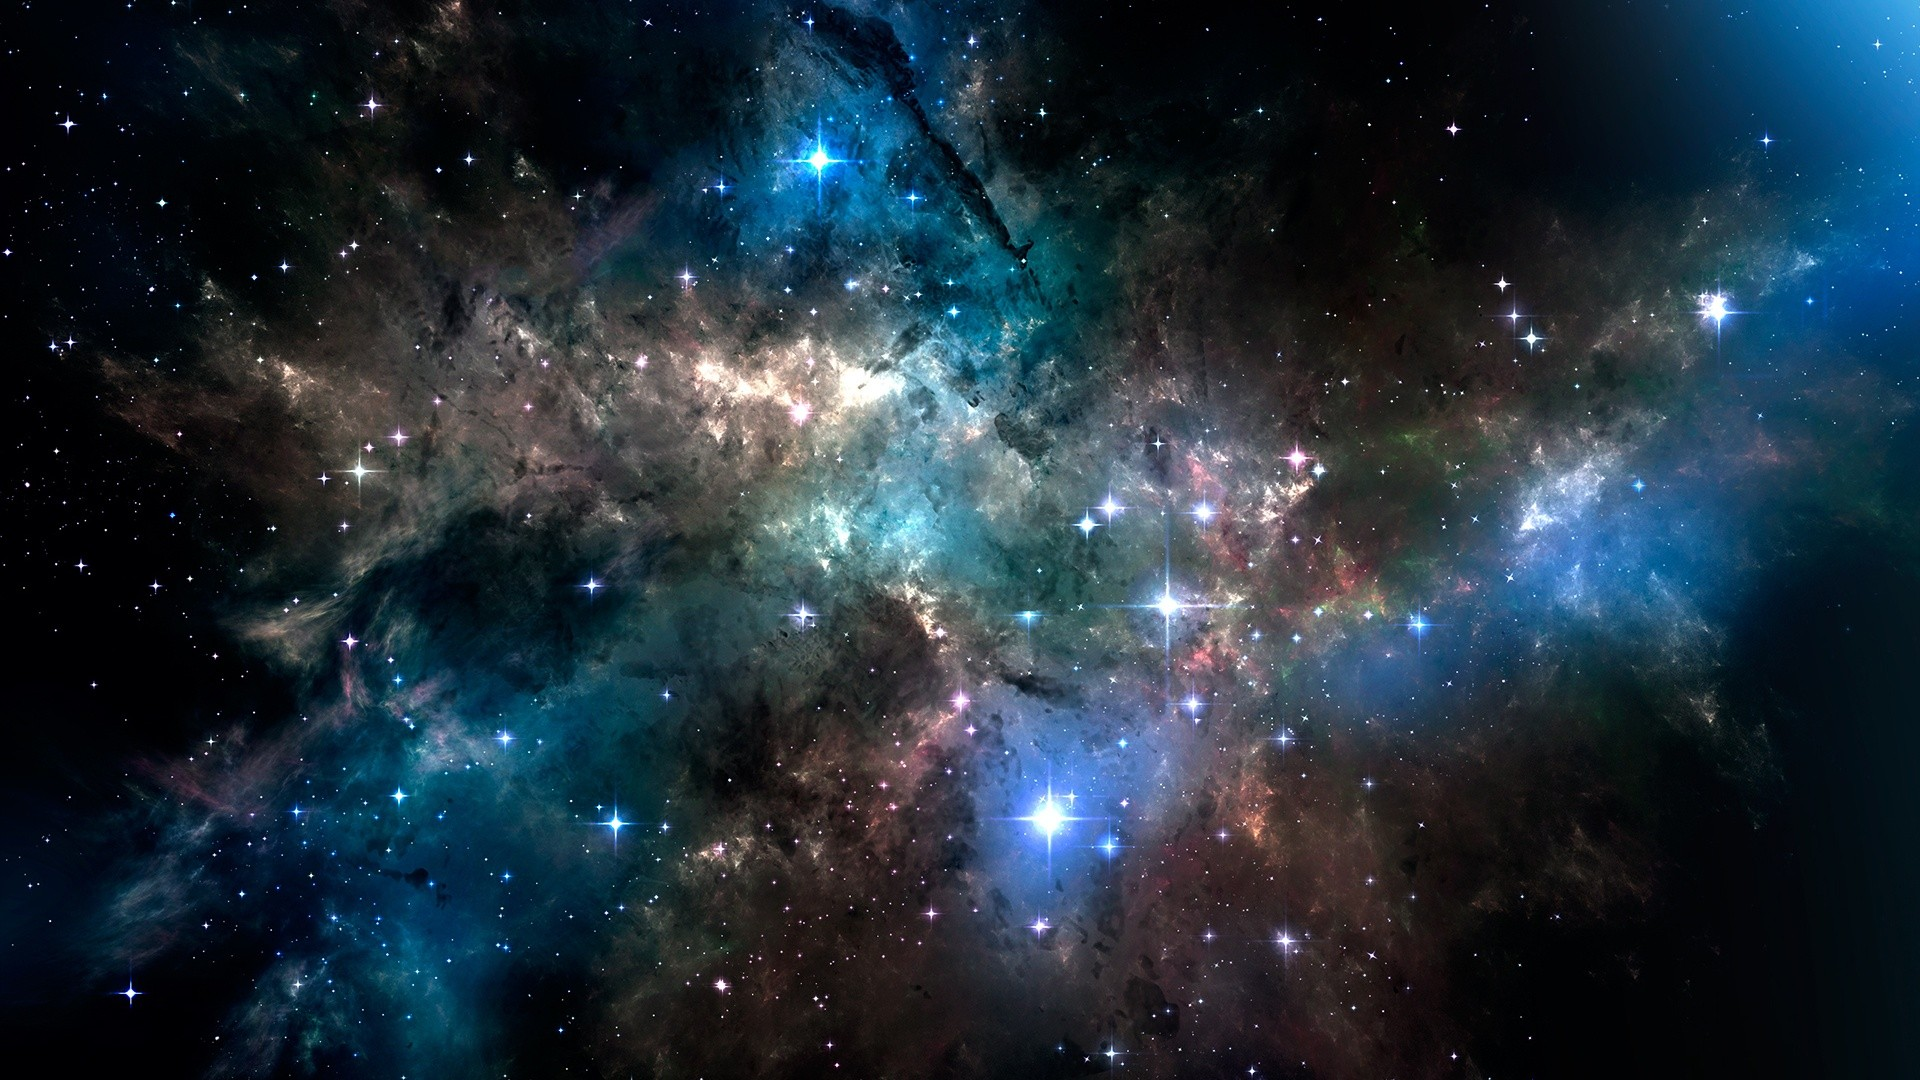 1920x1080 space wallpaper ·① download free beautiful wallpapers of